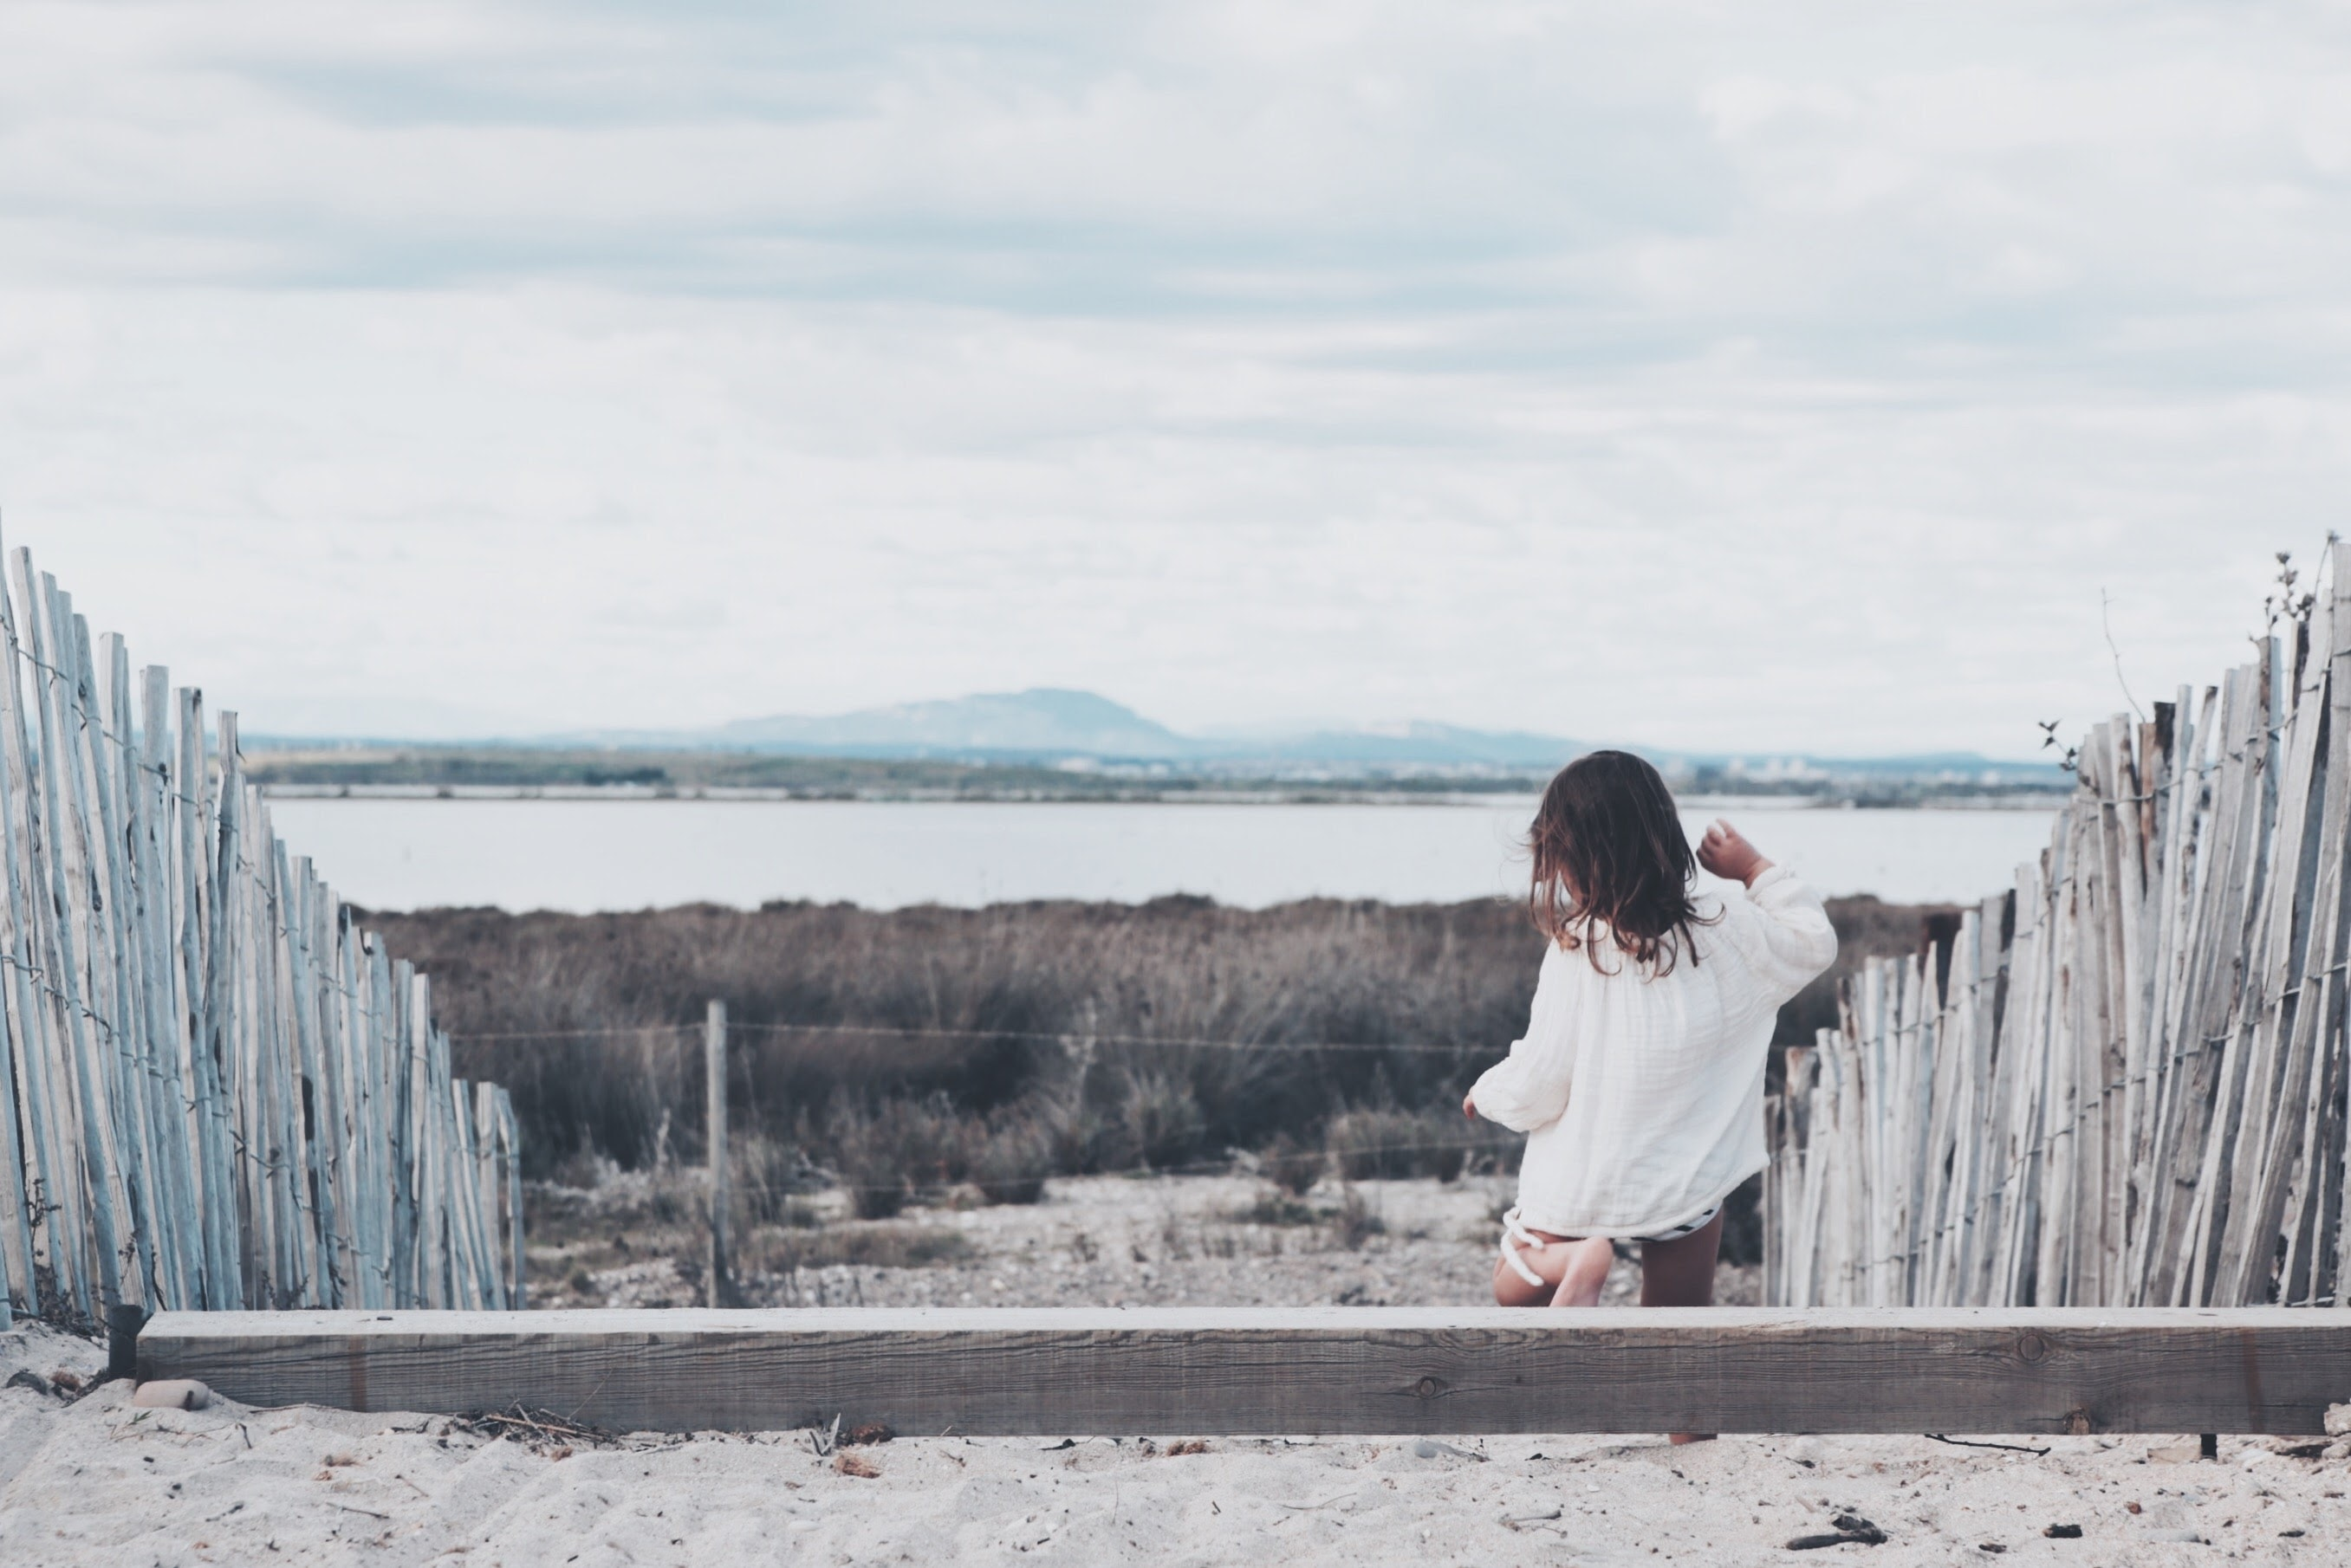 girl stepping down on wooden steps with wooden fence towards brown grassfield